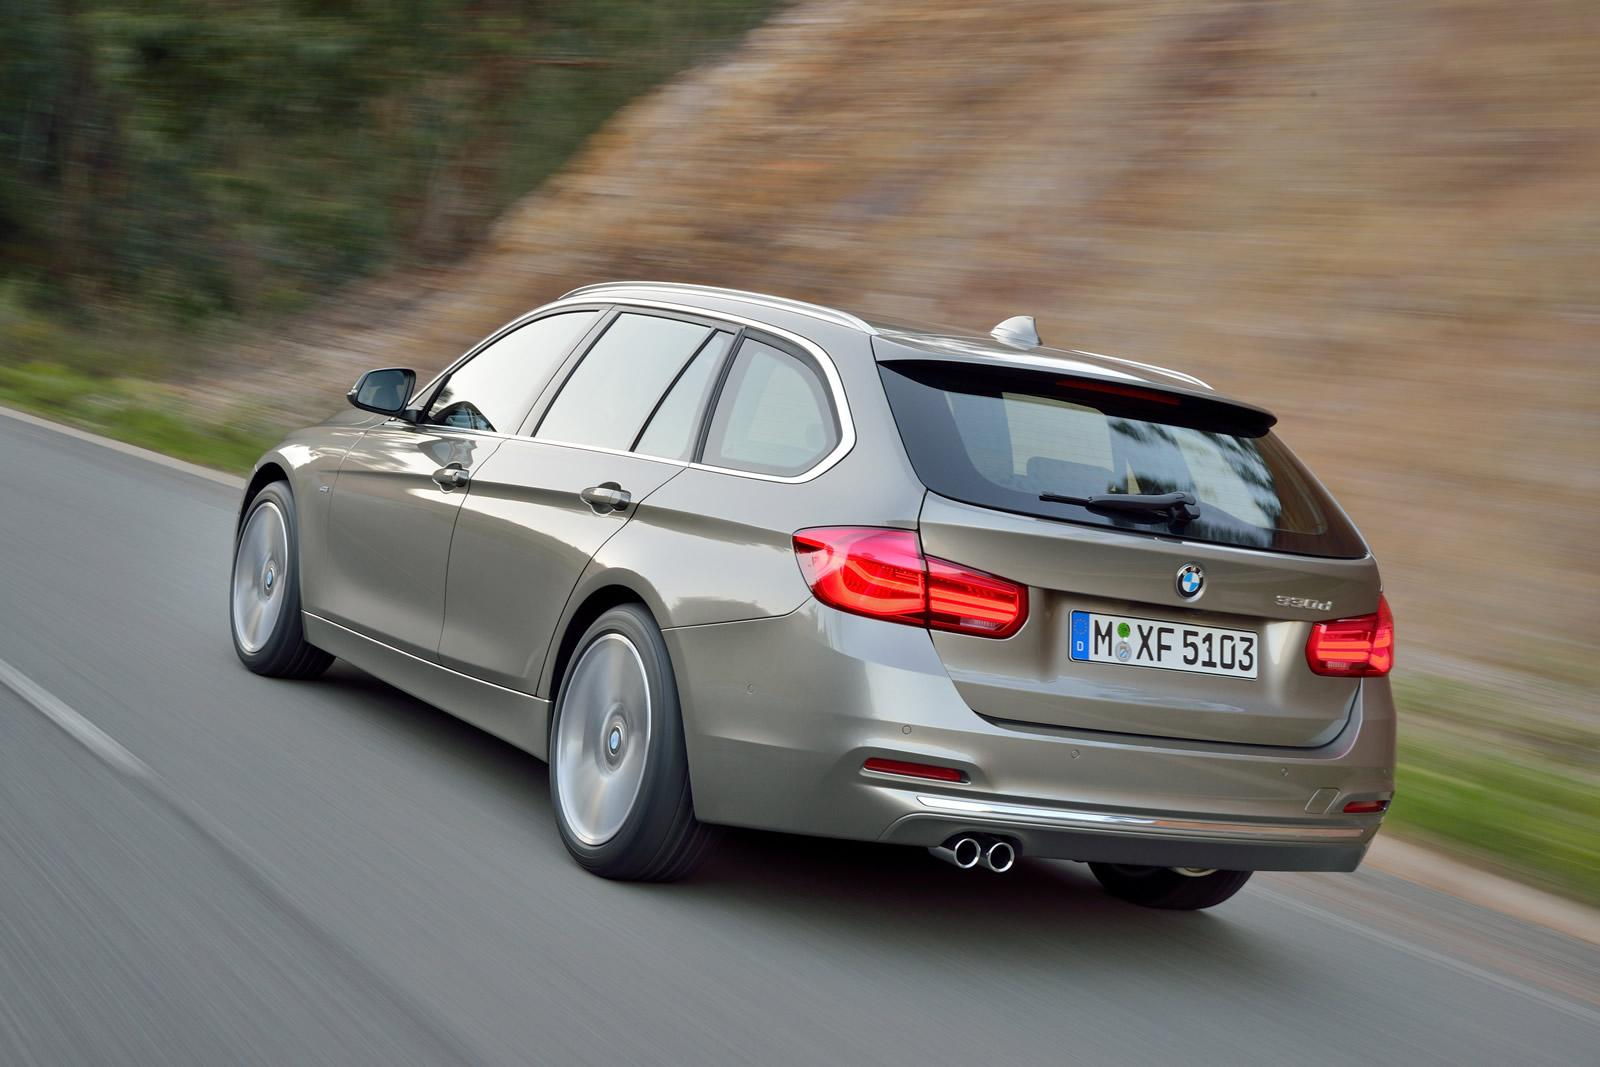 official photos of facelifted 2015 bmw 3 series hit web. Black Bedroom Furniture Sets. Home Design Ideas